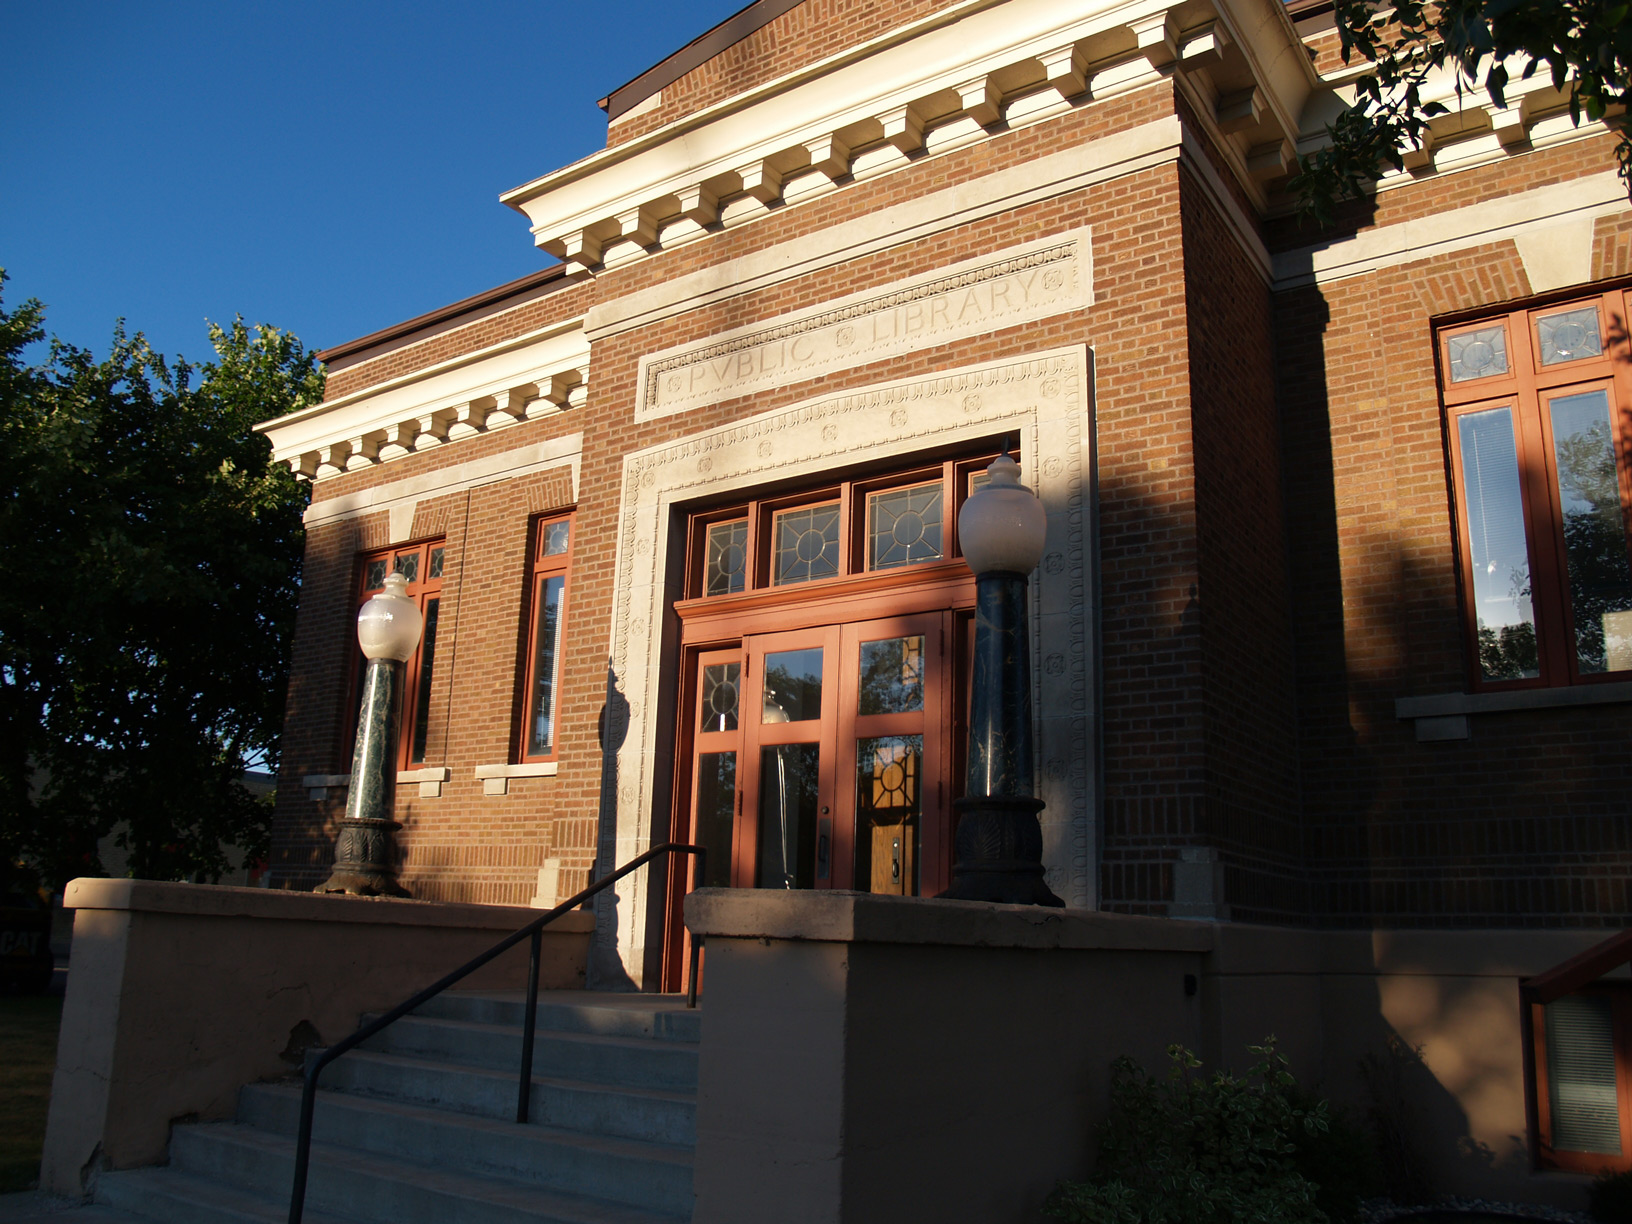 The former Thief River Falls Public Library, recently restored and soon to be opened for community use.